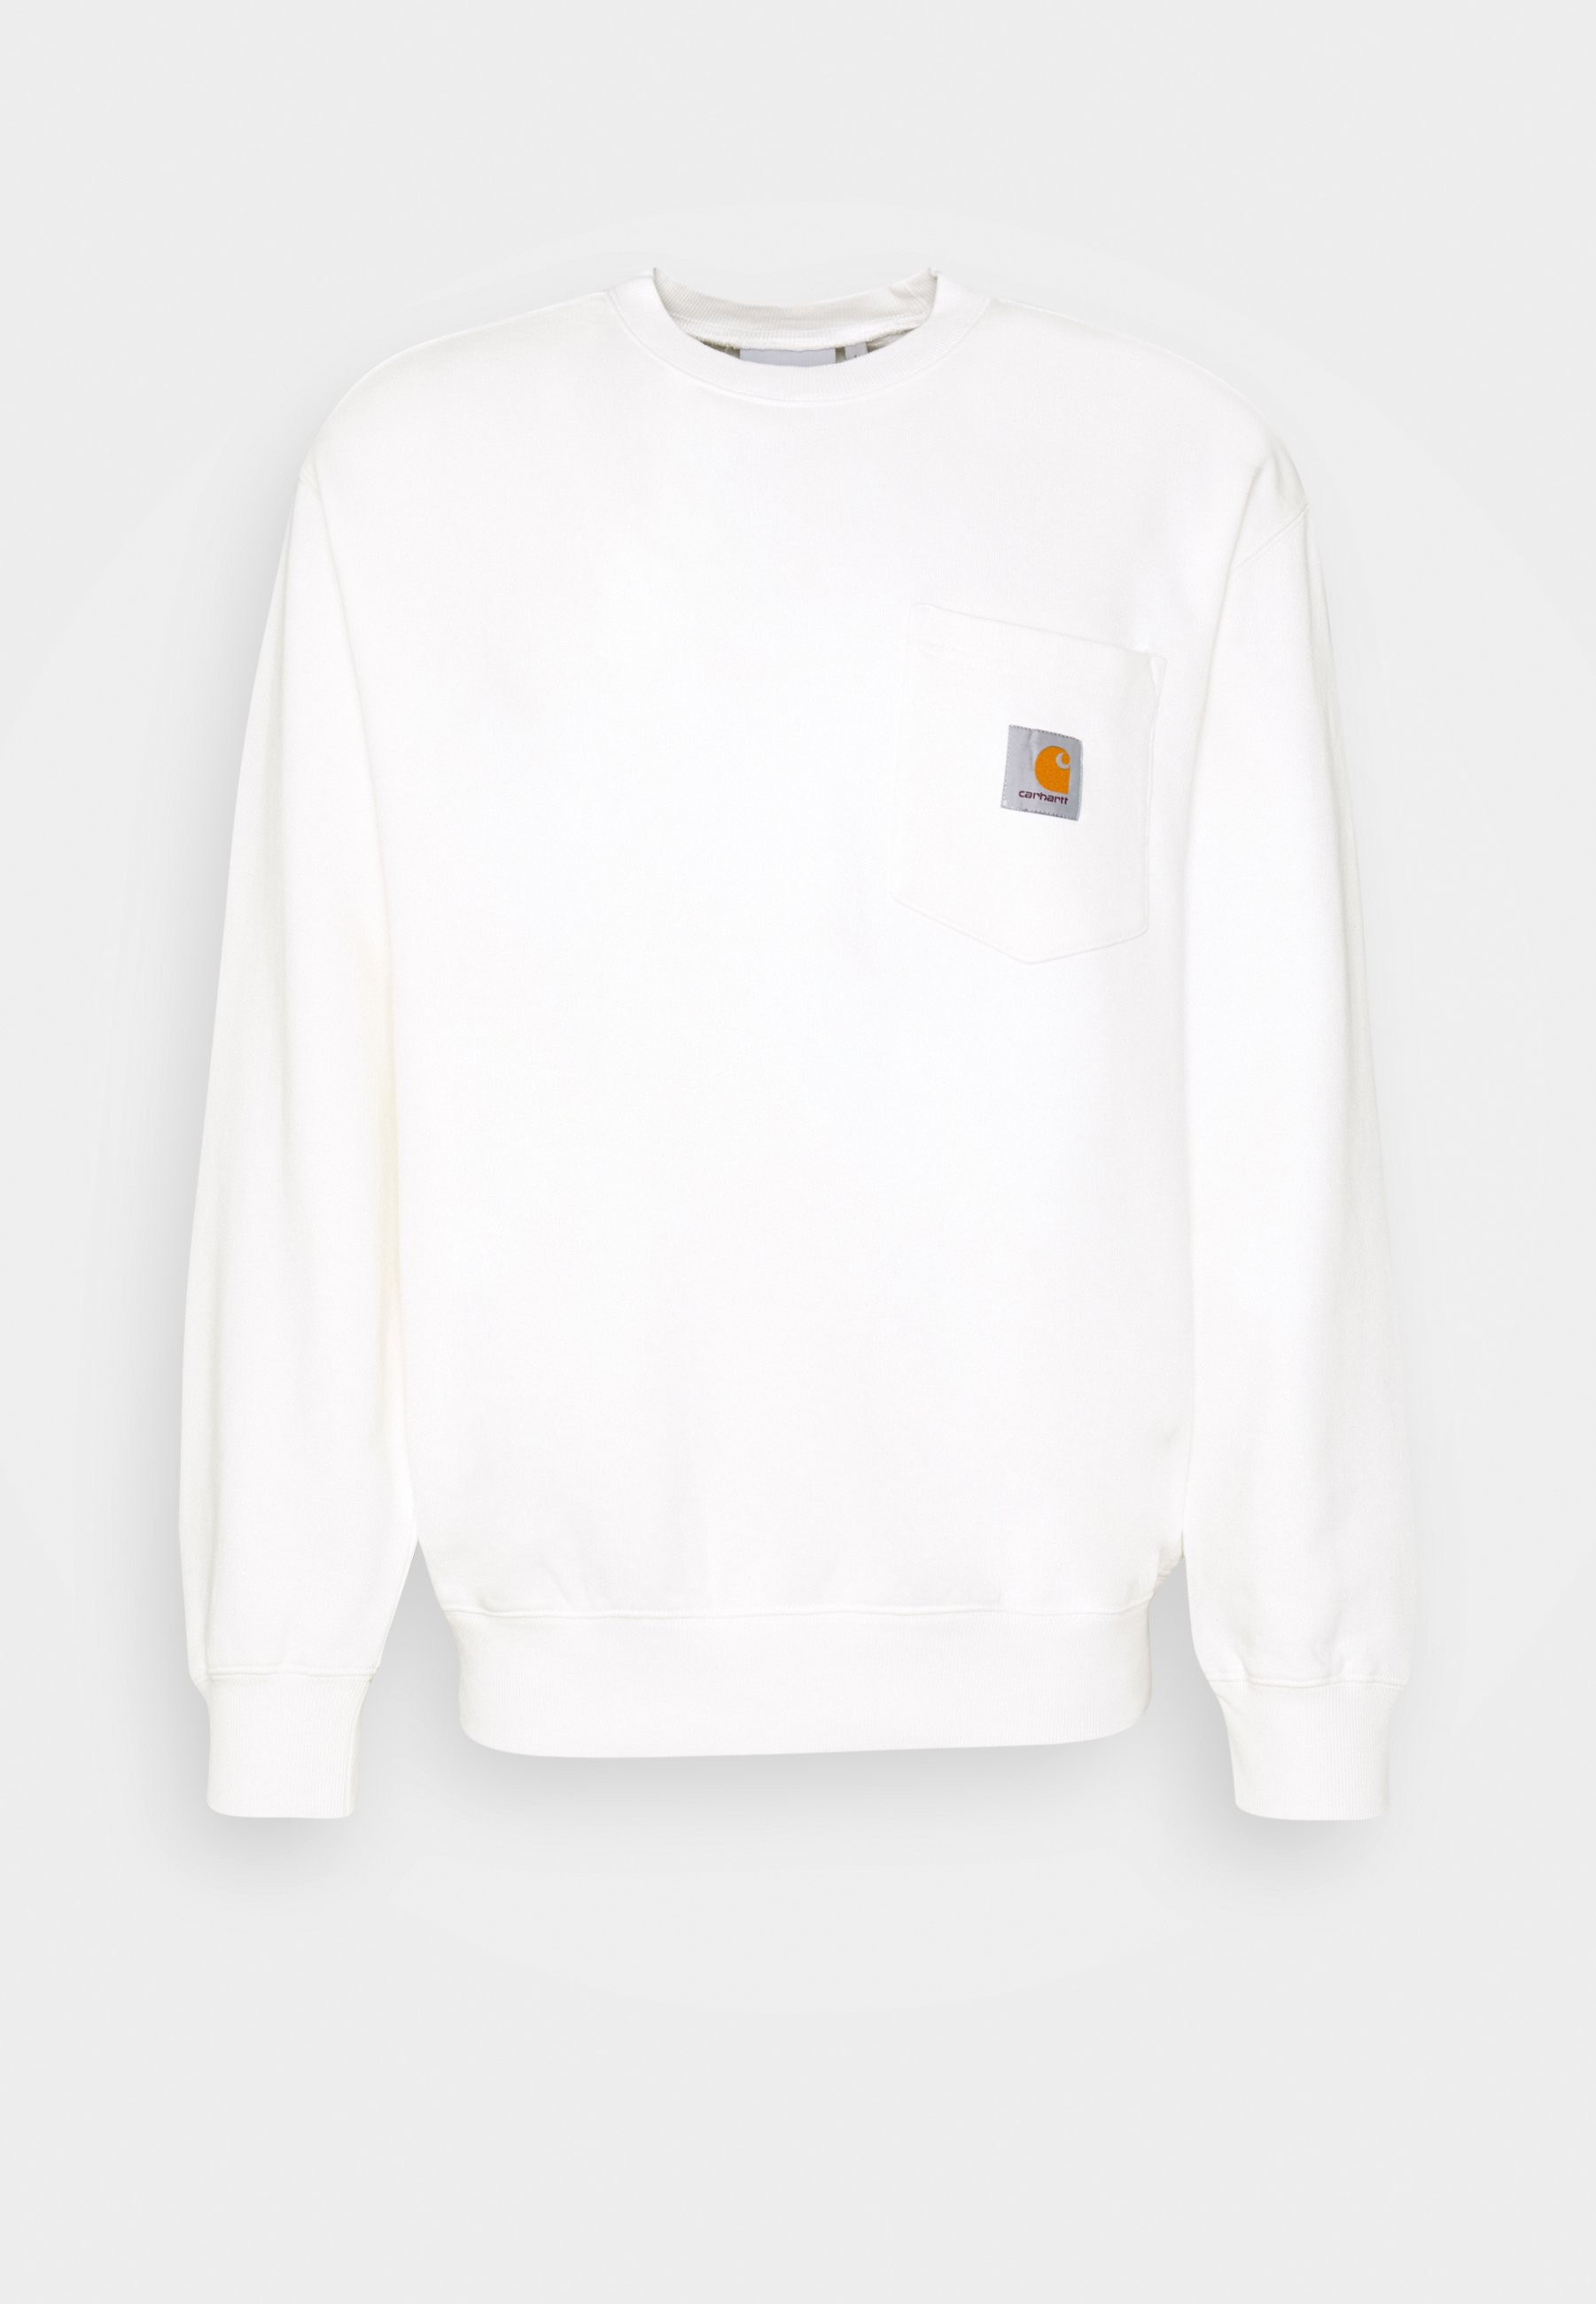 Carhartt Wip Pocket - Sweatshirt Wax/offwhite